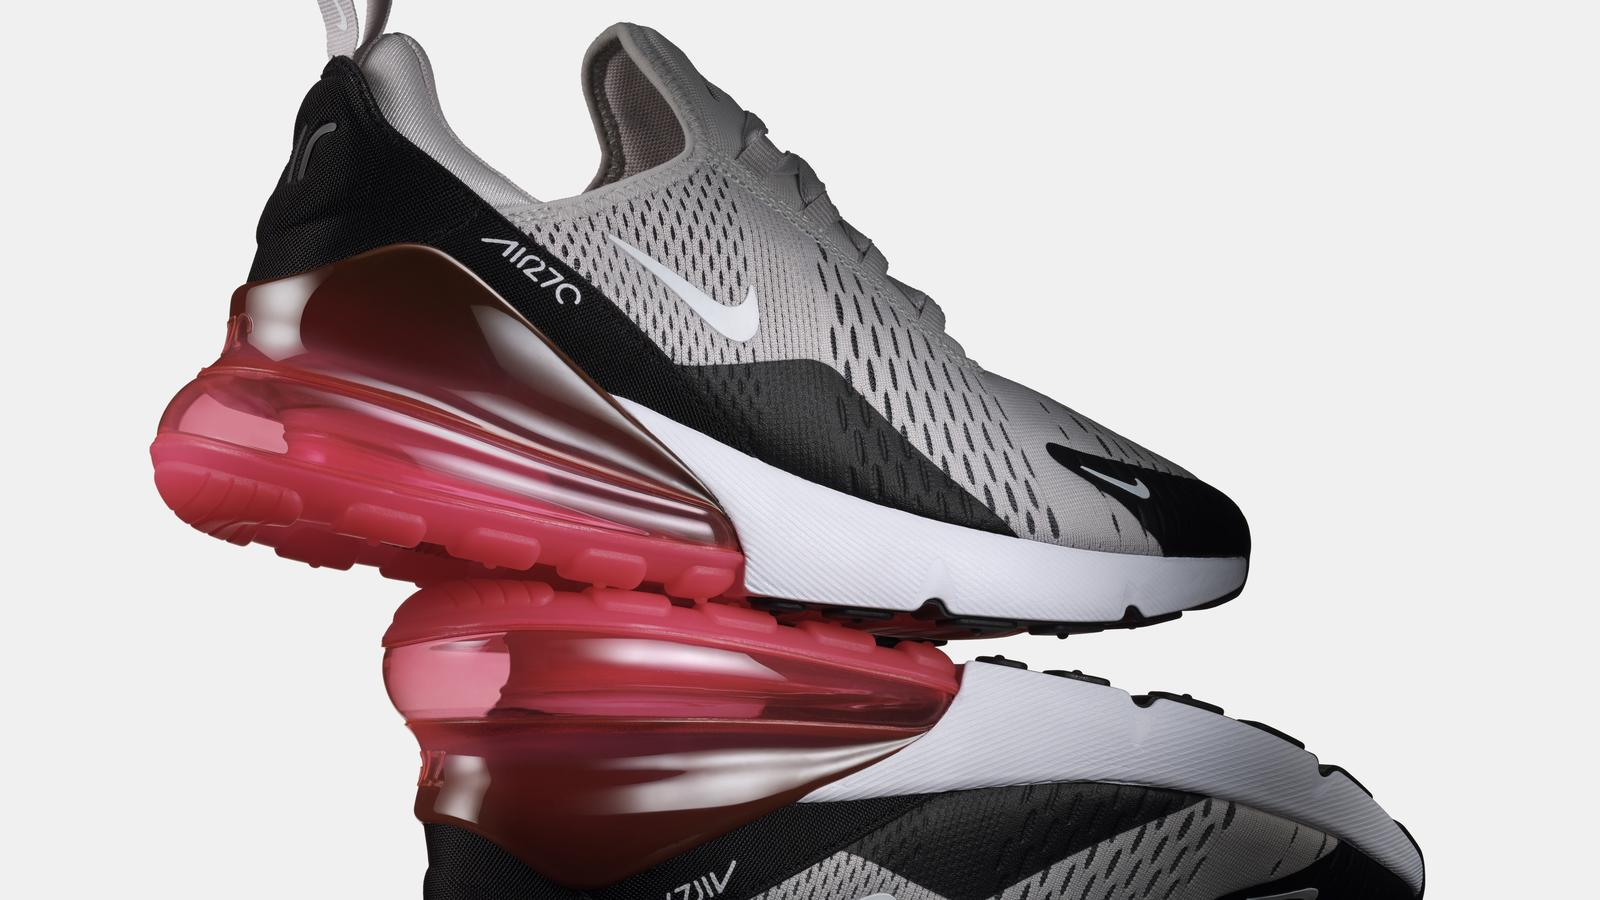 29bed032b58a Eight Facts About the All-New Air Max 270 - Nike News